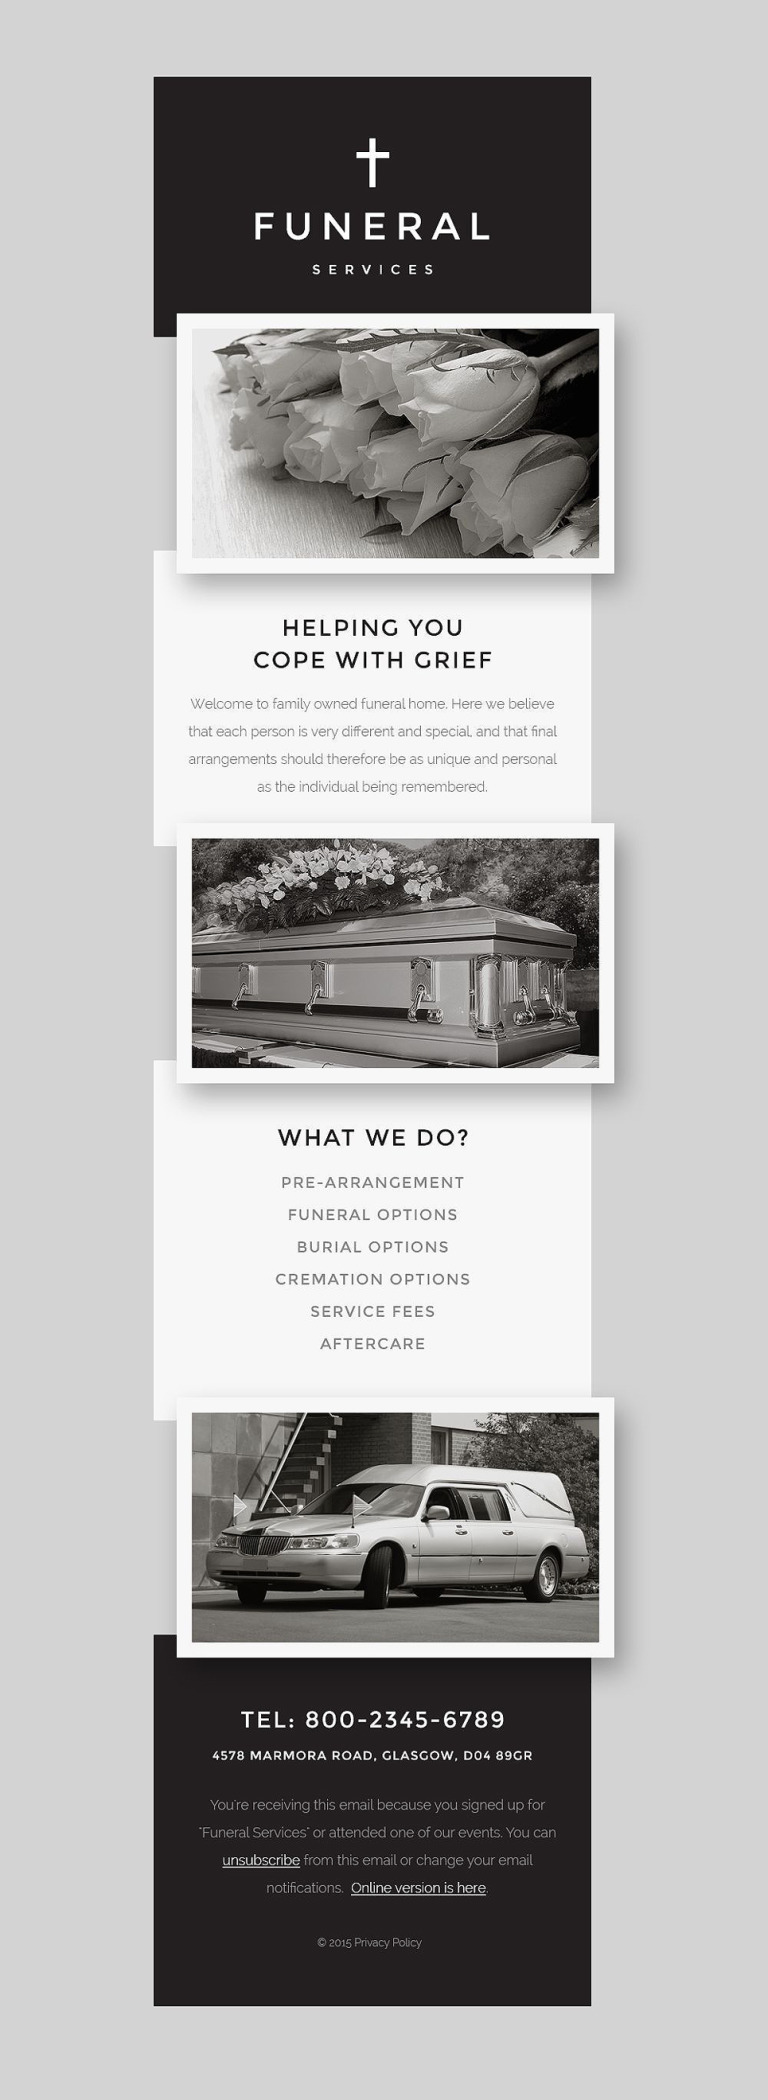 Funeral Services Responsive Newsletter Template New Screenshots BIG